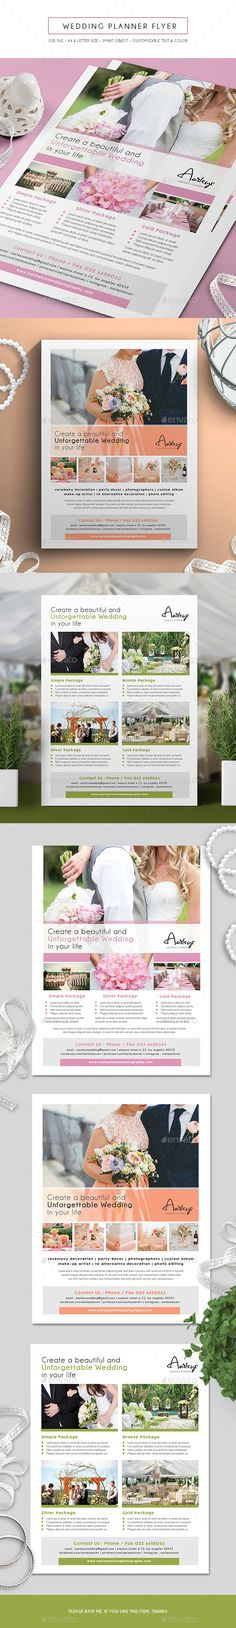 Wedding Planner Flyer - Corporate Flyers #Design #Flyer #Template Download: http://graphicriver.net/item/wedding-planner-flyer/15882193?ref=WebDesignSpider